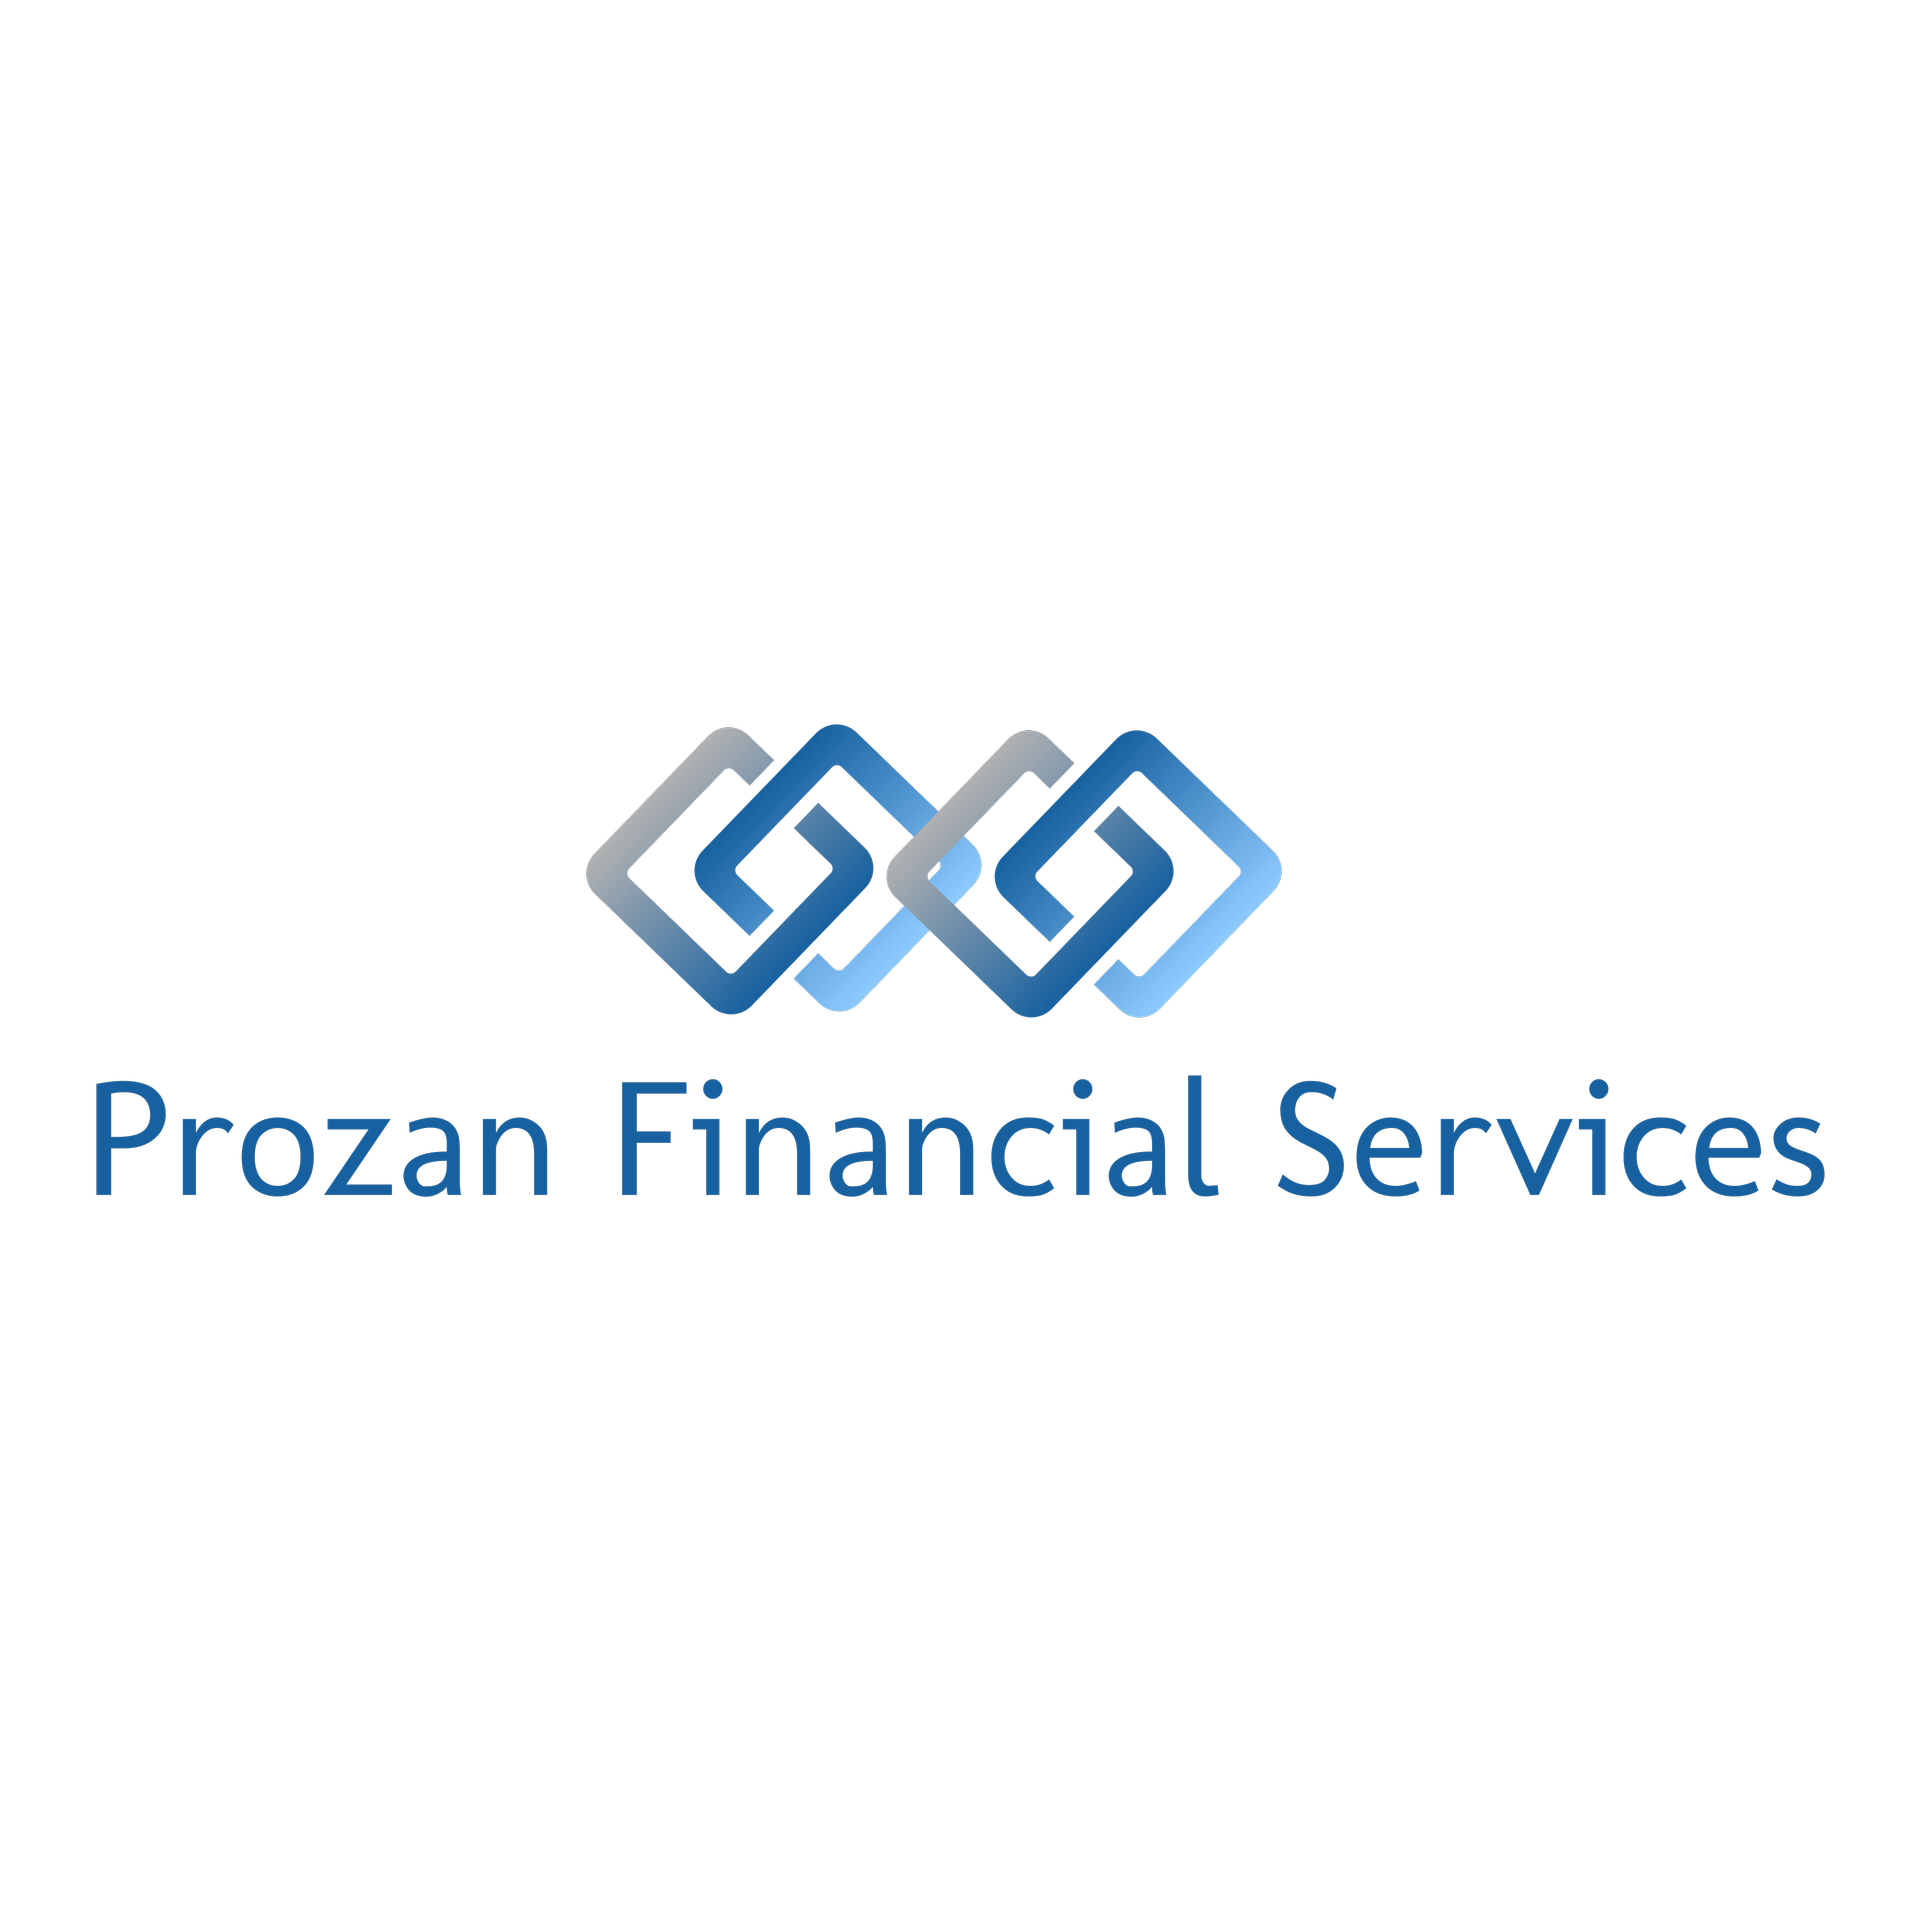 PROZAN FINANCIAL SERVICES